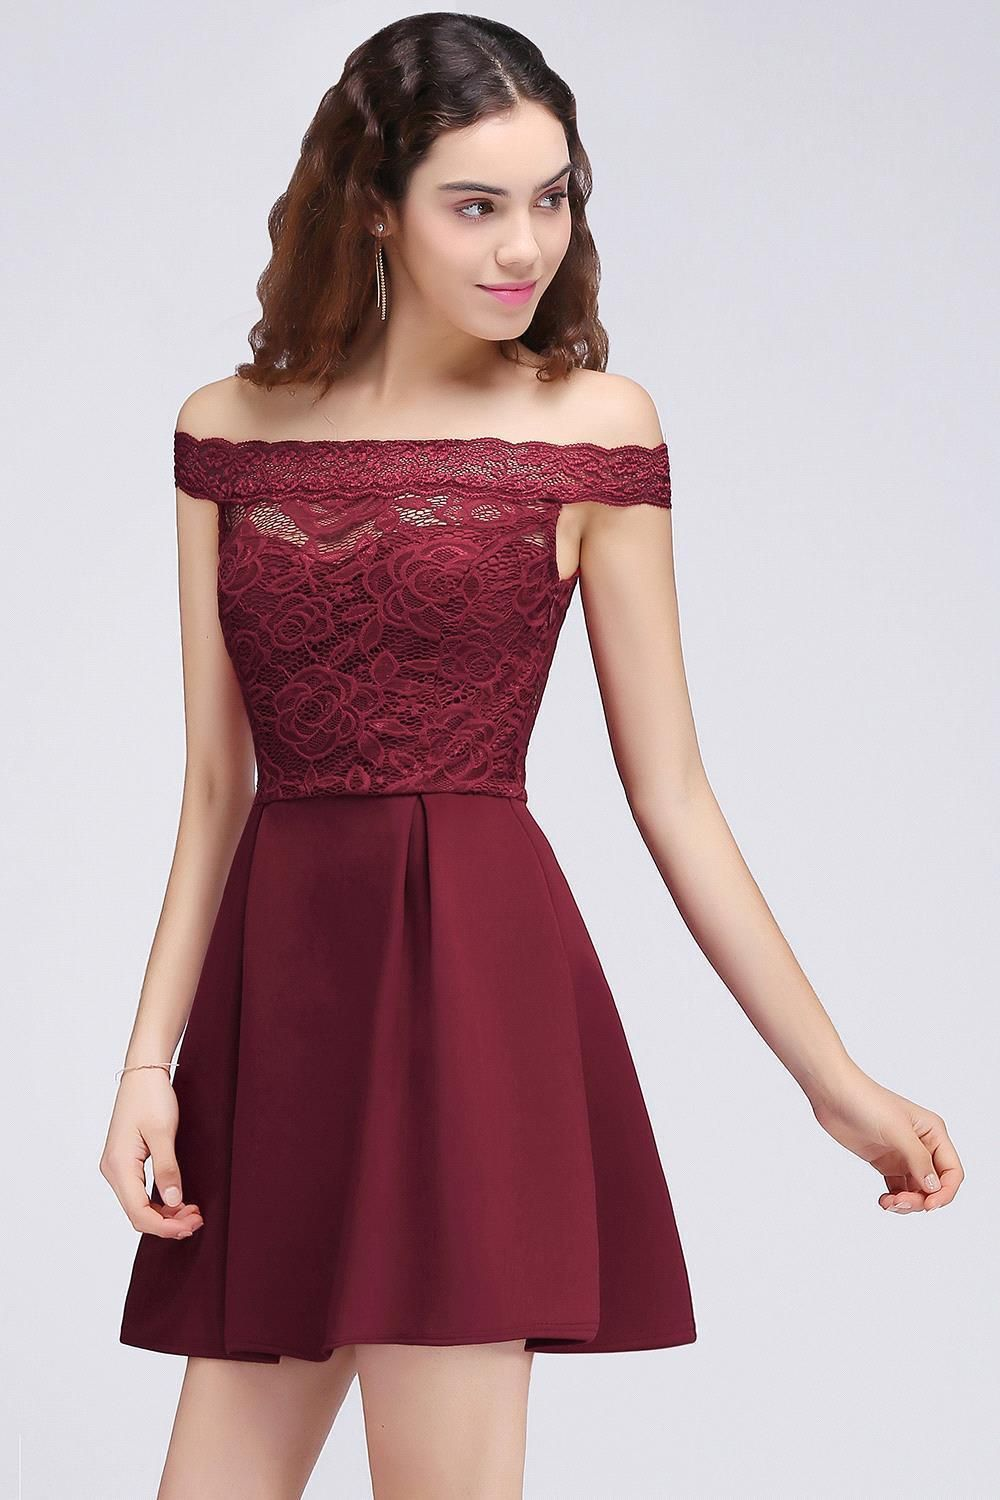 344620b0ad0 In Stock Cocktail Dresses 2018 Simple A Line Boat Neck lace Satin Women  Short Vestidos Sexy Women off shoulder Cocktail Dresses  cocktaildresses   princess ...